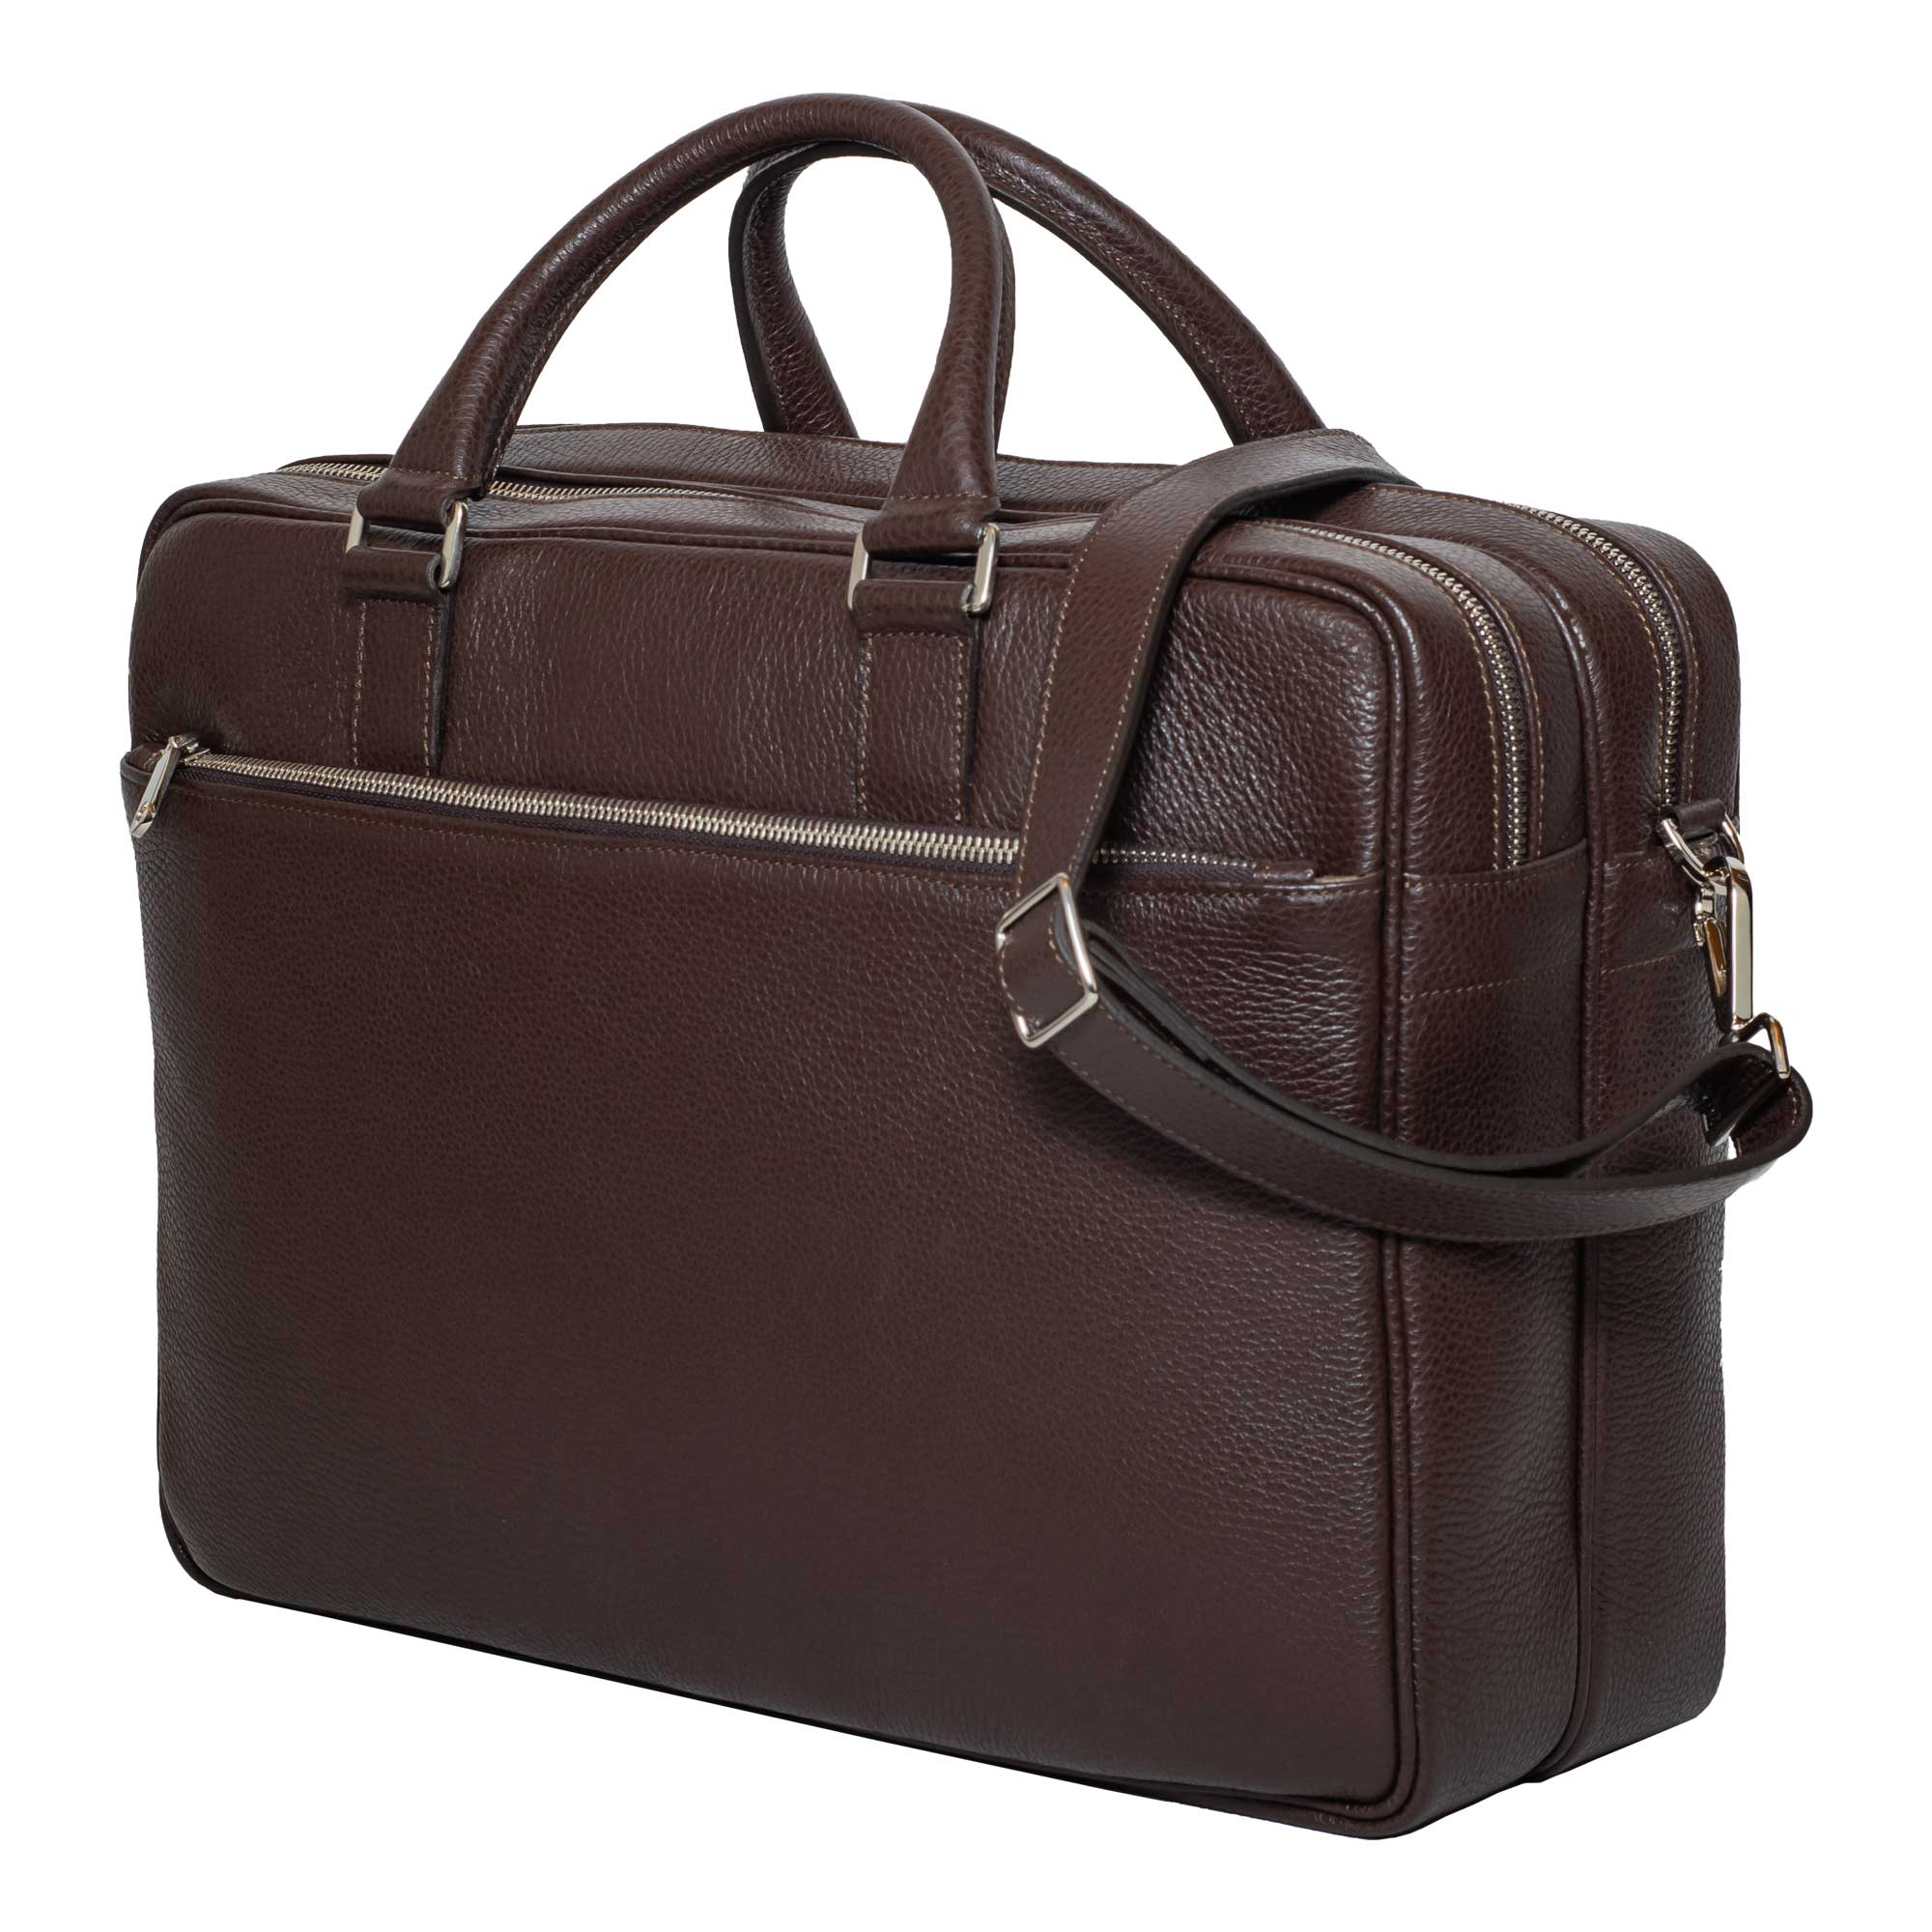 DiLoro Italian Leather Briefcases for Men in Brown | Made in Italy - Front, side view with full length zippered pocket.